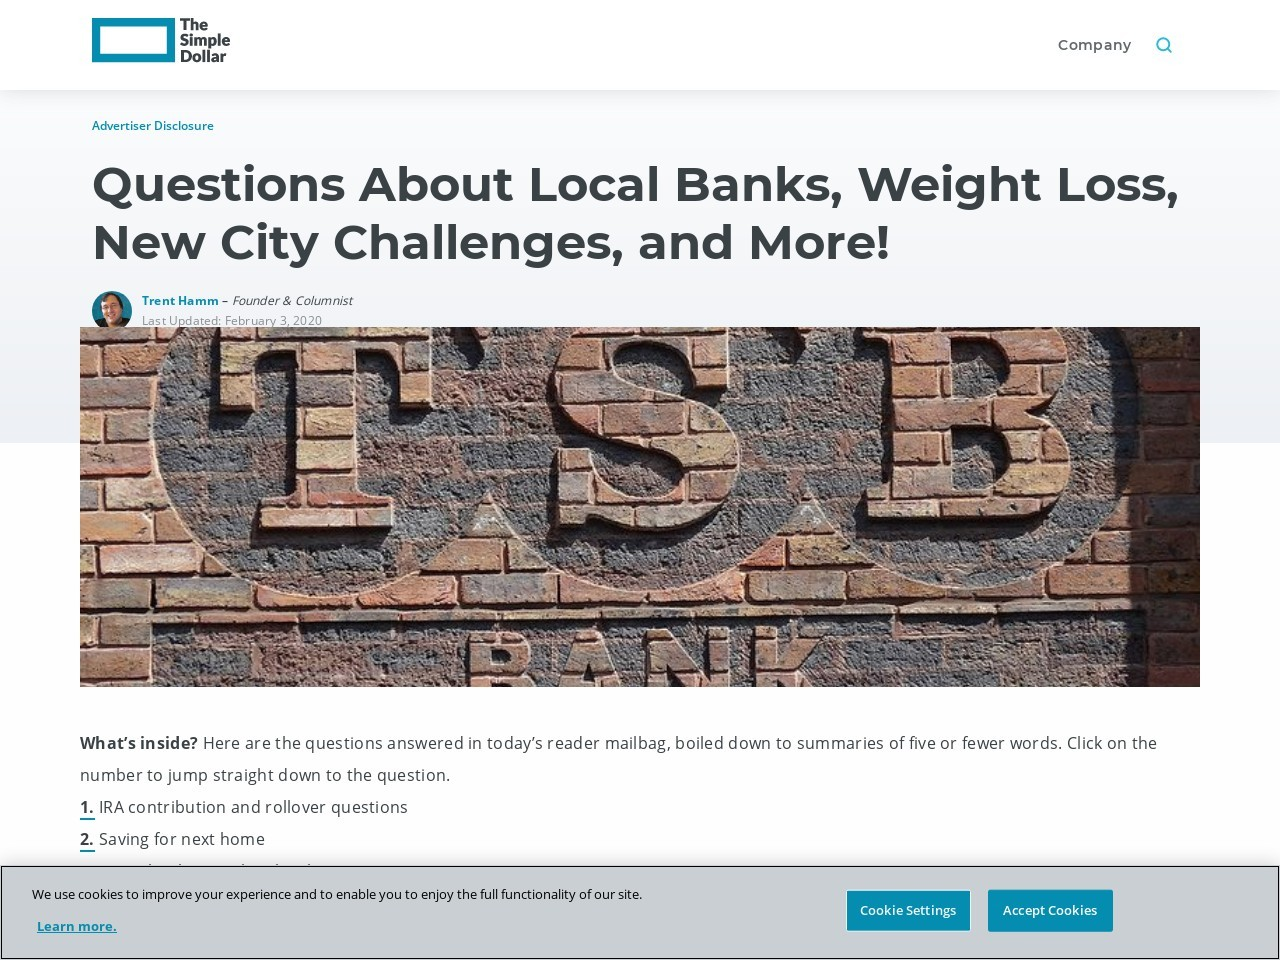 Questions About Local Banks, Weight Loss, New City Challenges, and More!